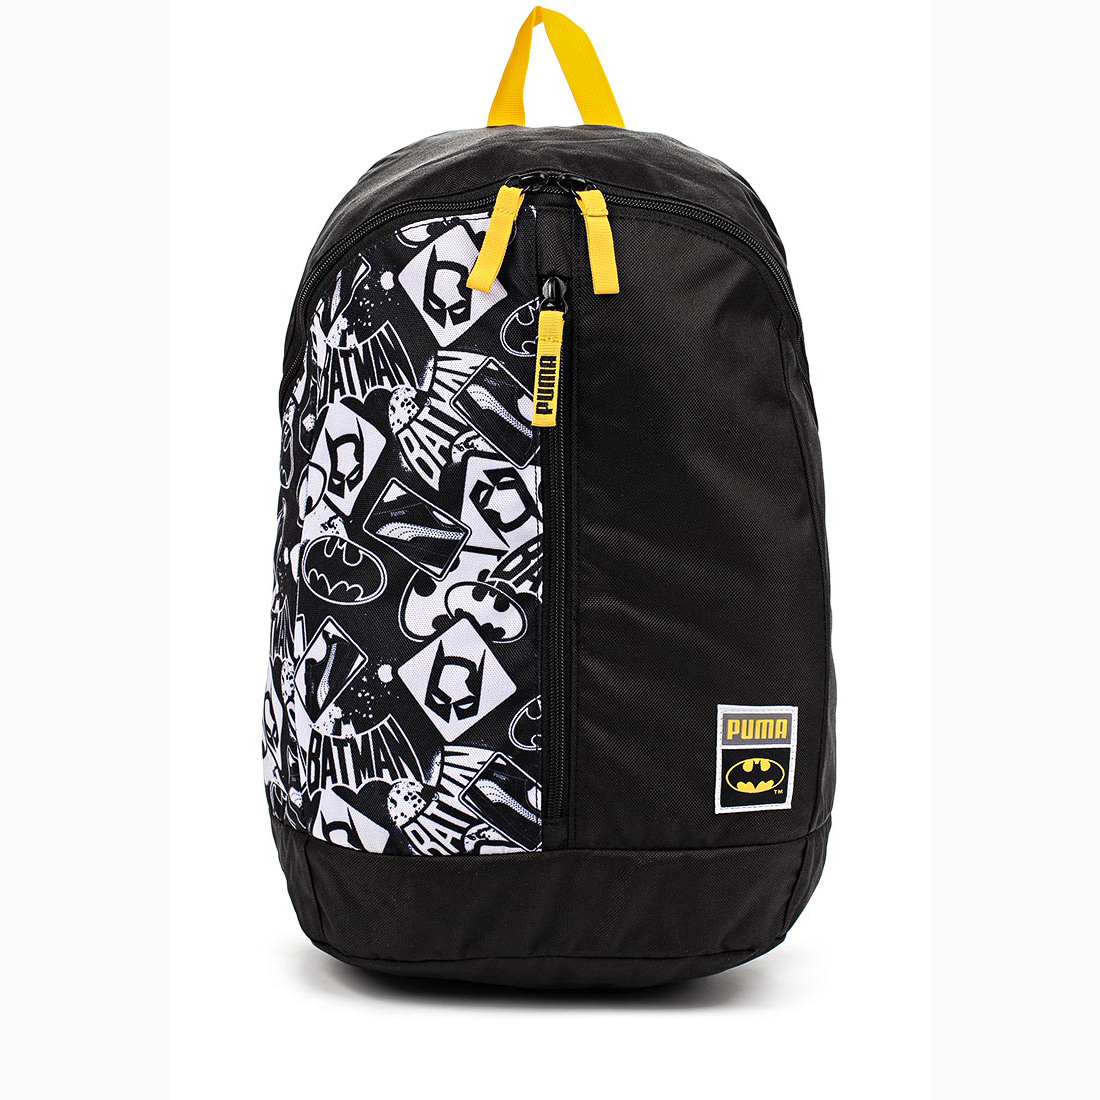 Batman Large Backpack Puma Bla